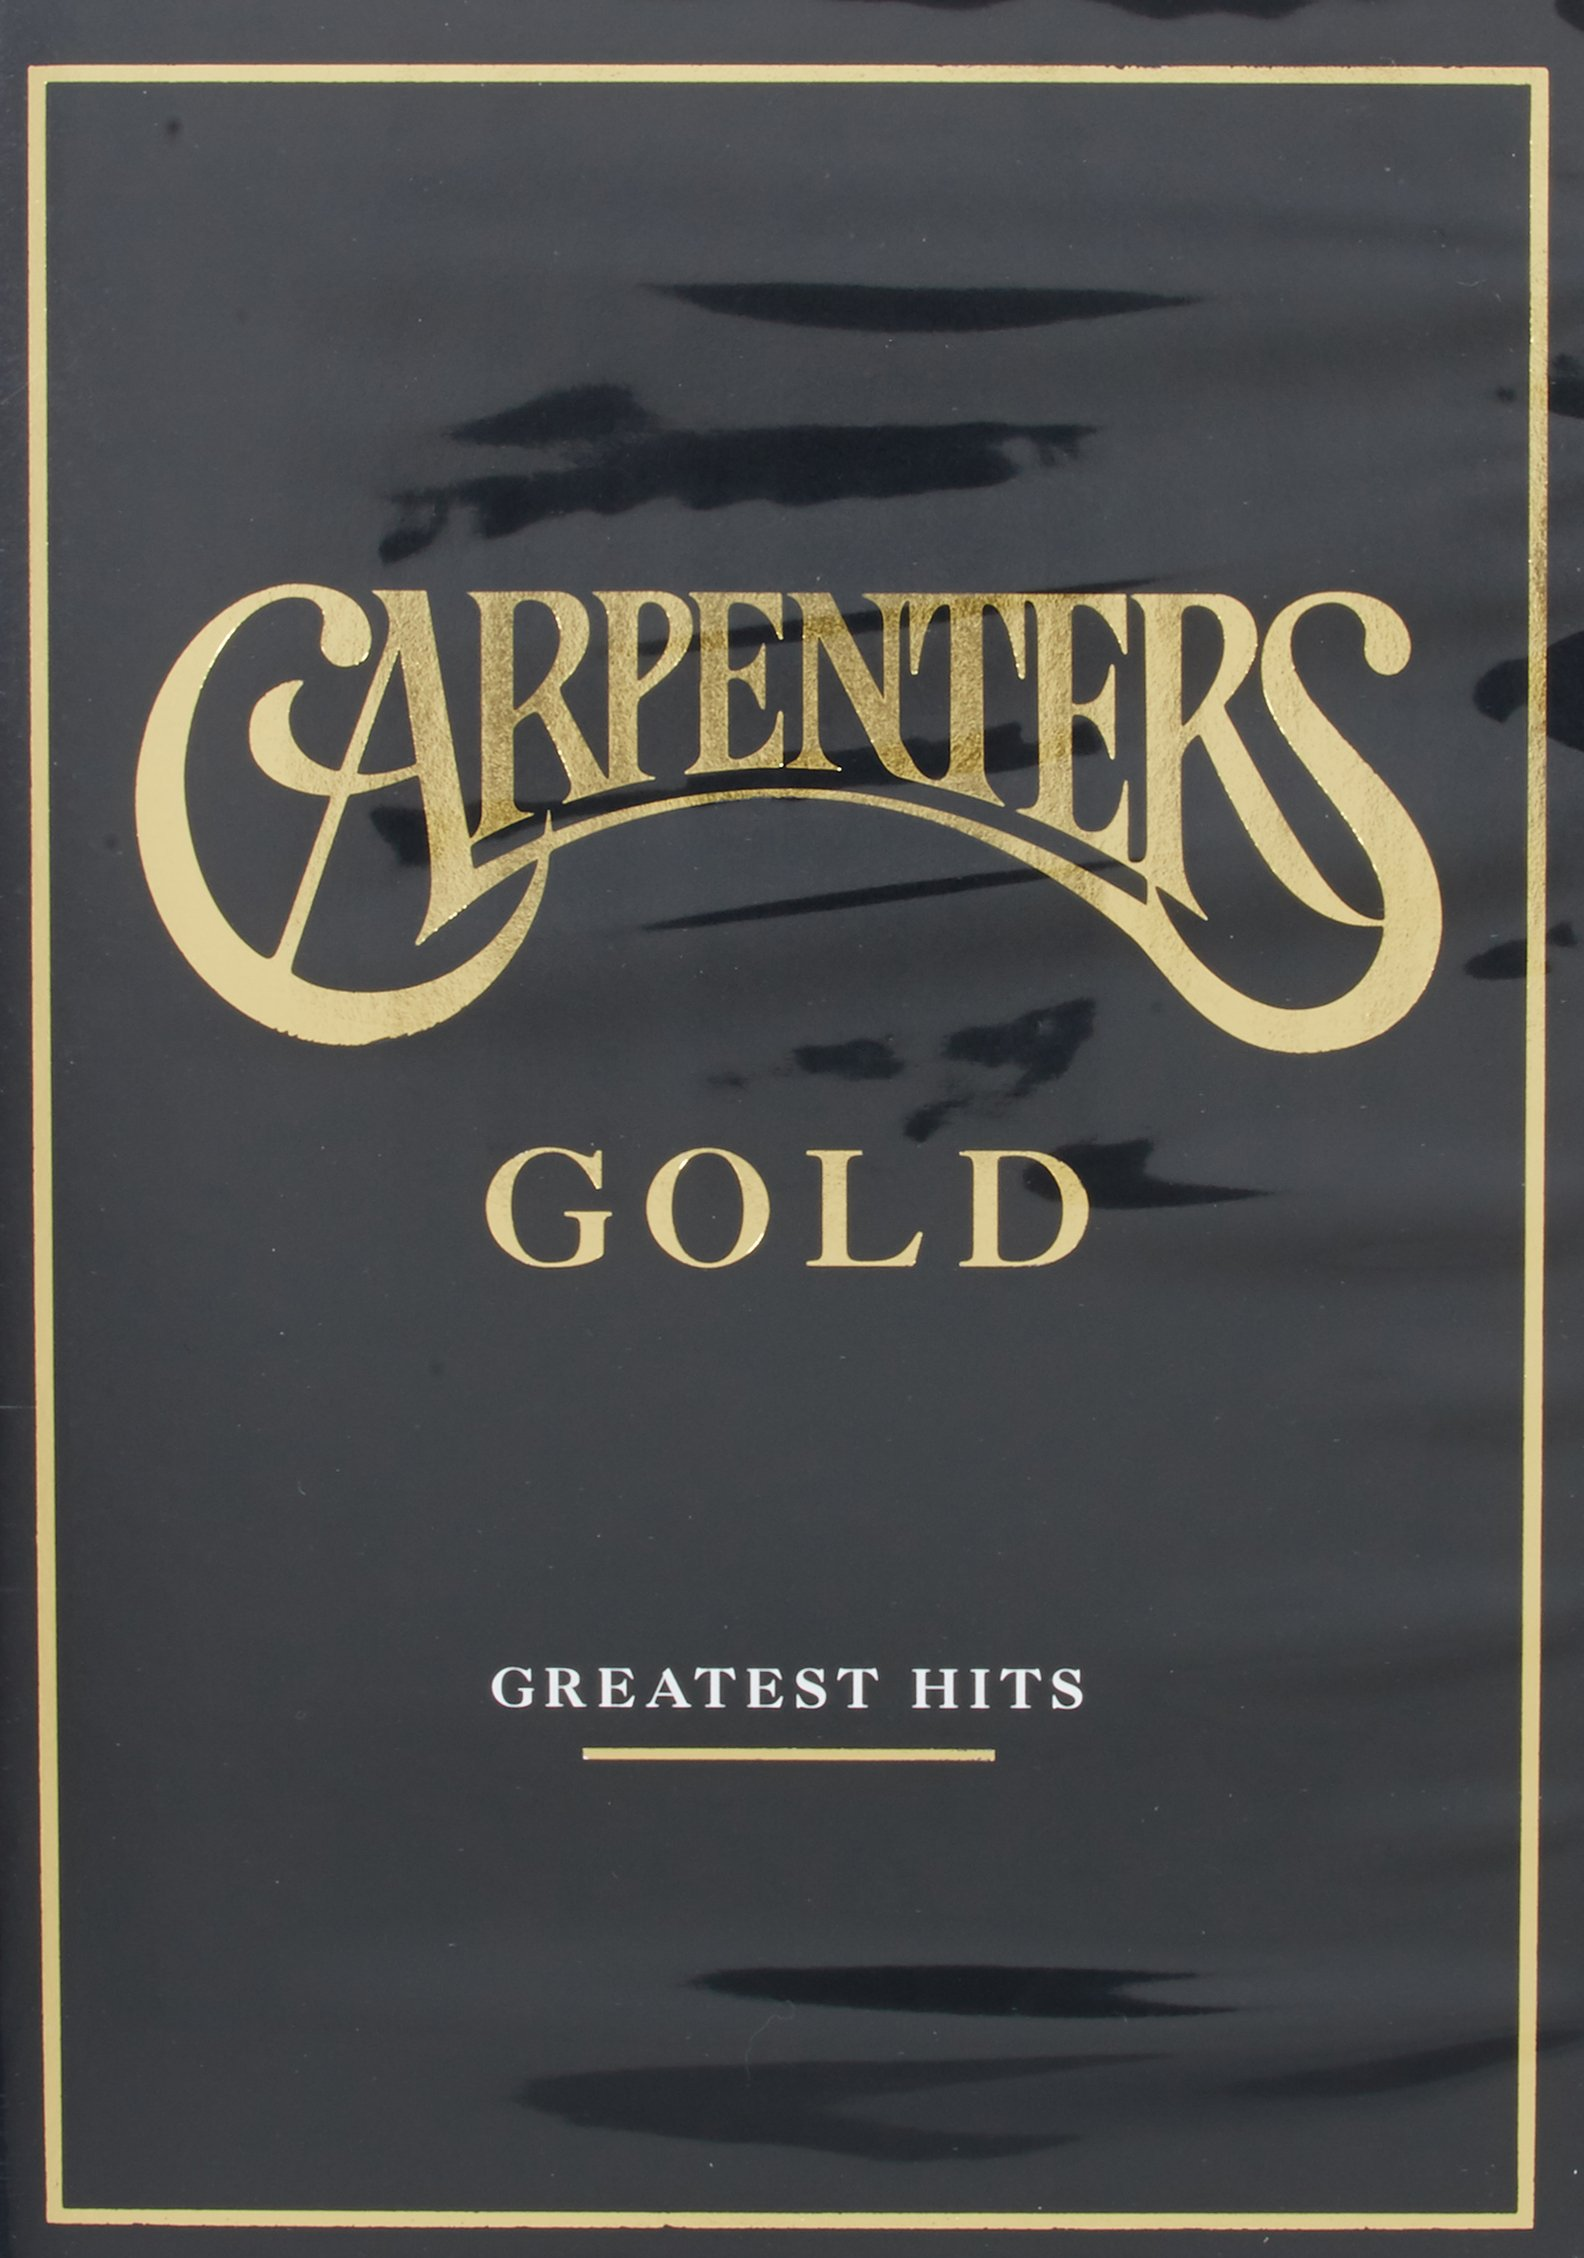 The Carpenters - Gold: Greatest Hits by A&M